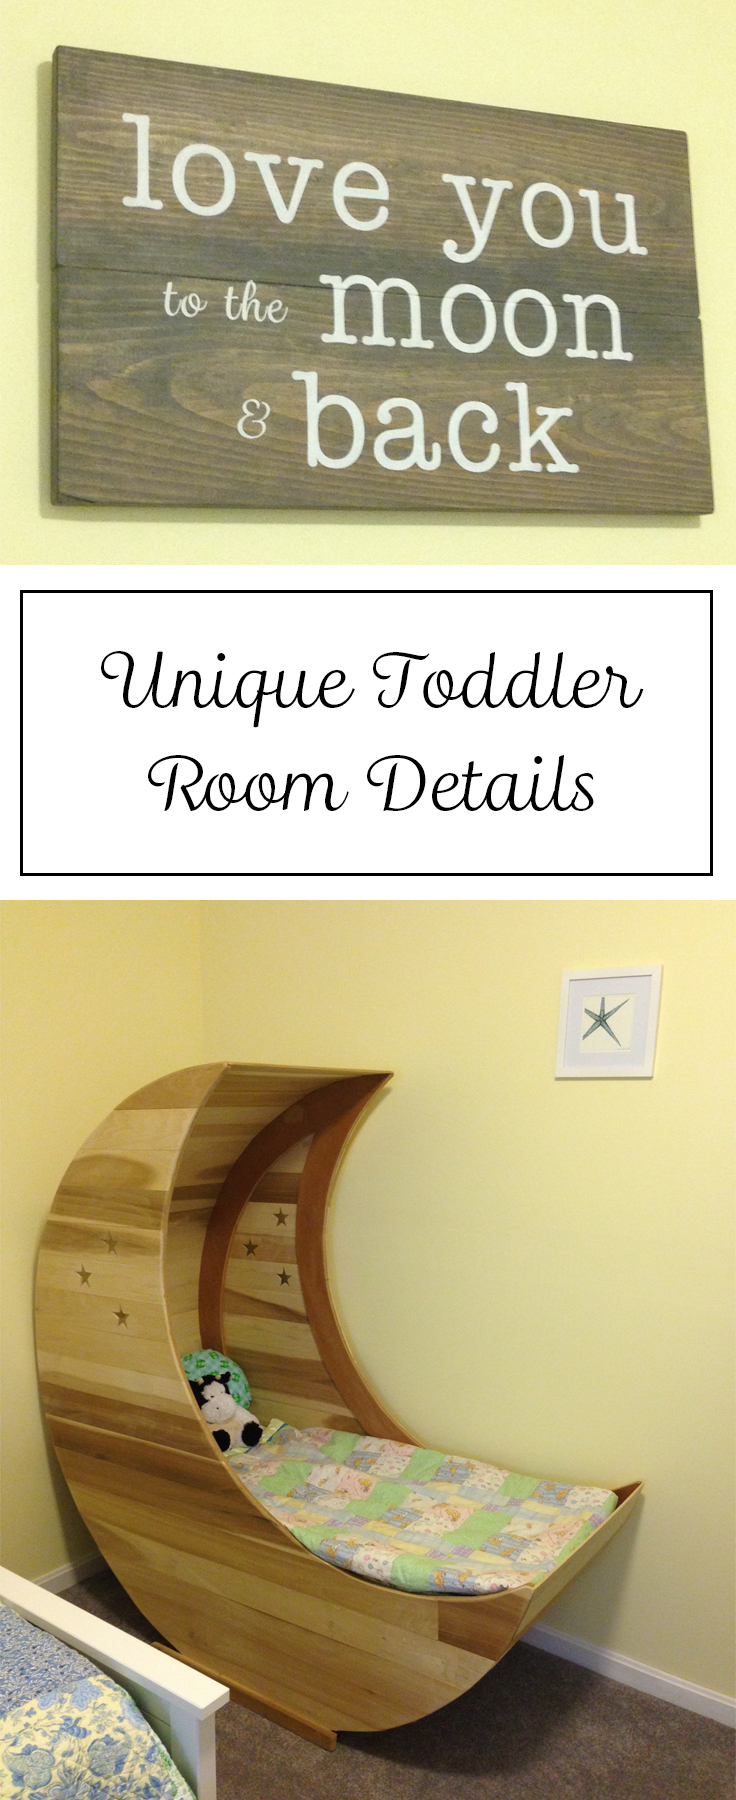 Unique Toddler Room Details